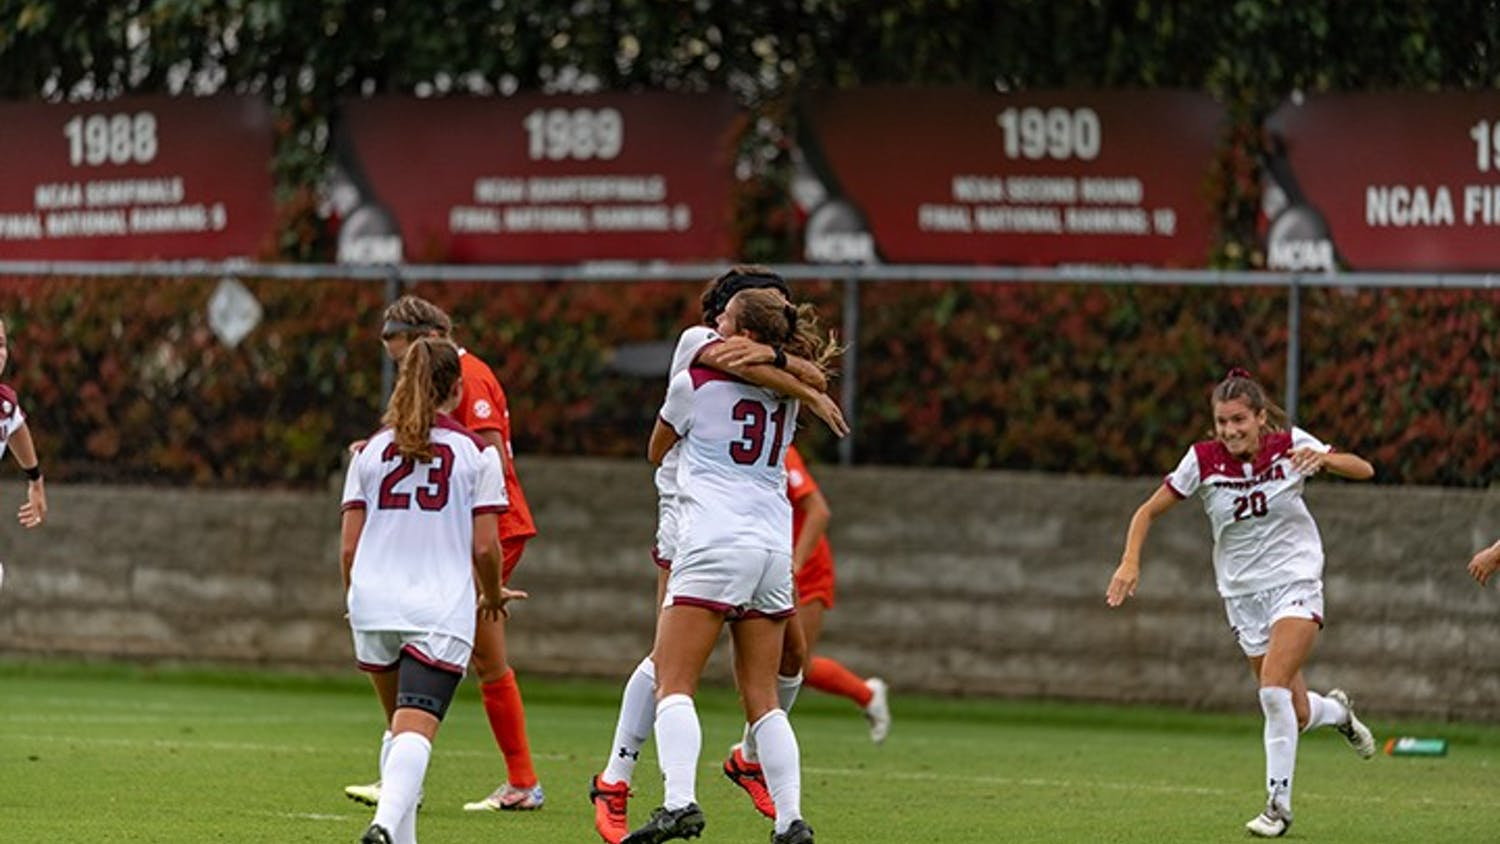 Freshman midfielder Rylee Forster celebrates a goal with her teammates against Florida earlier in the 2020 season.